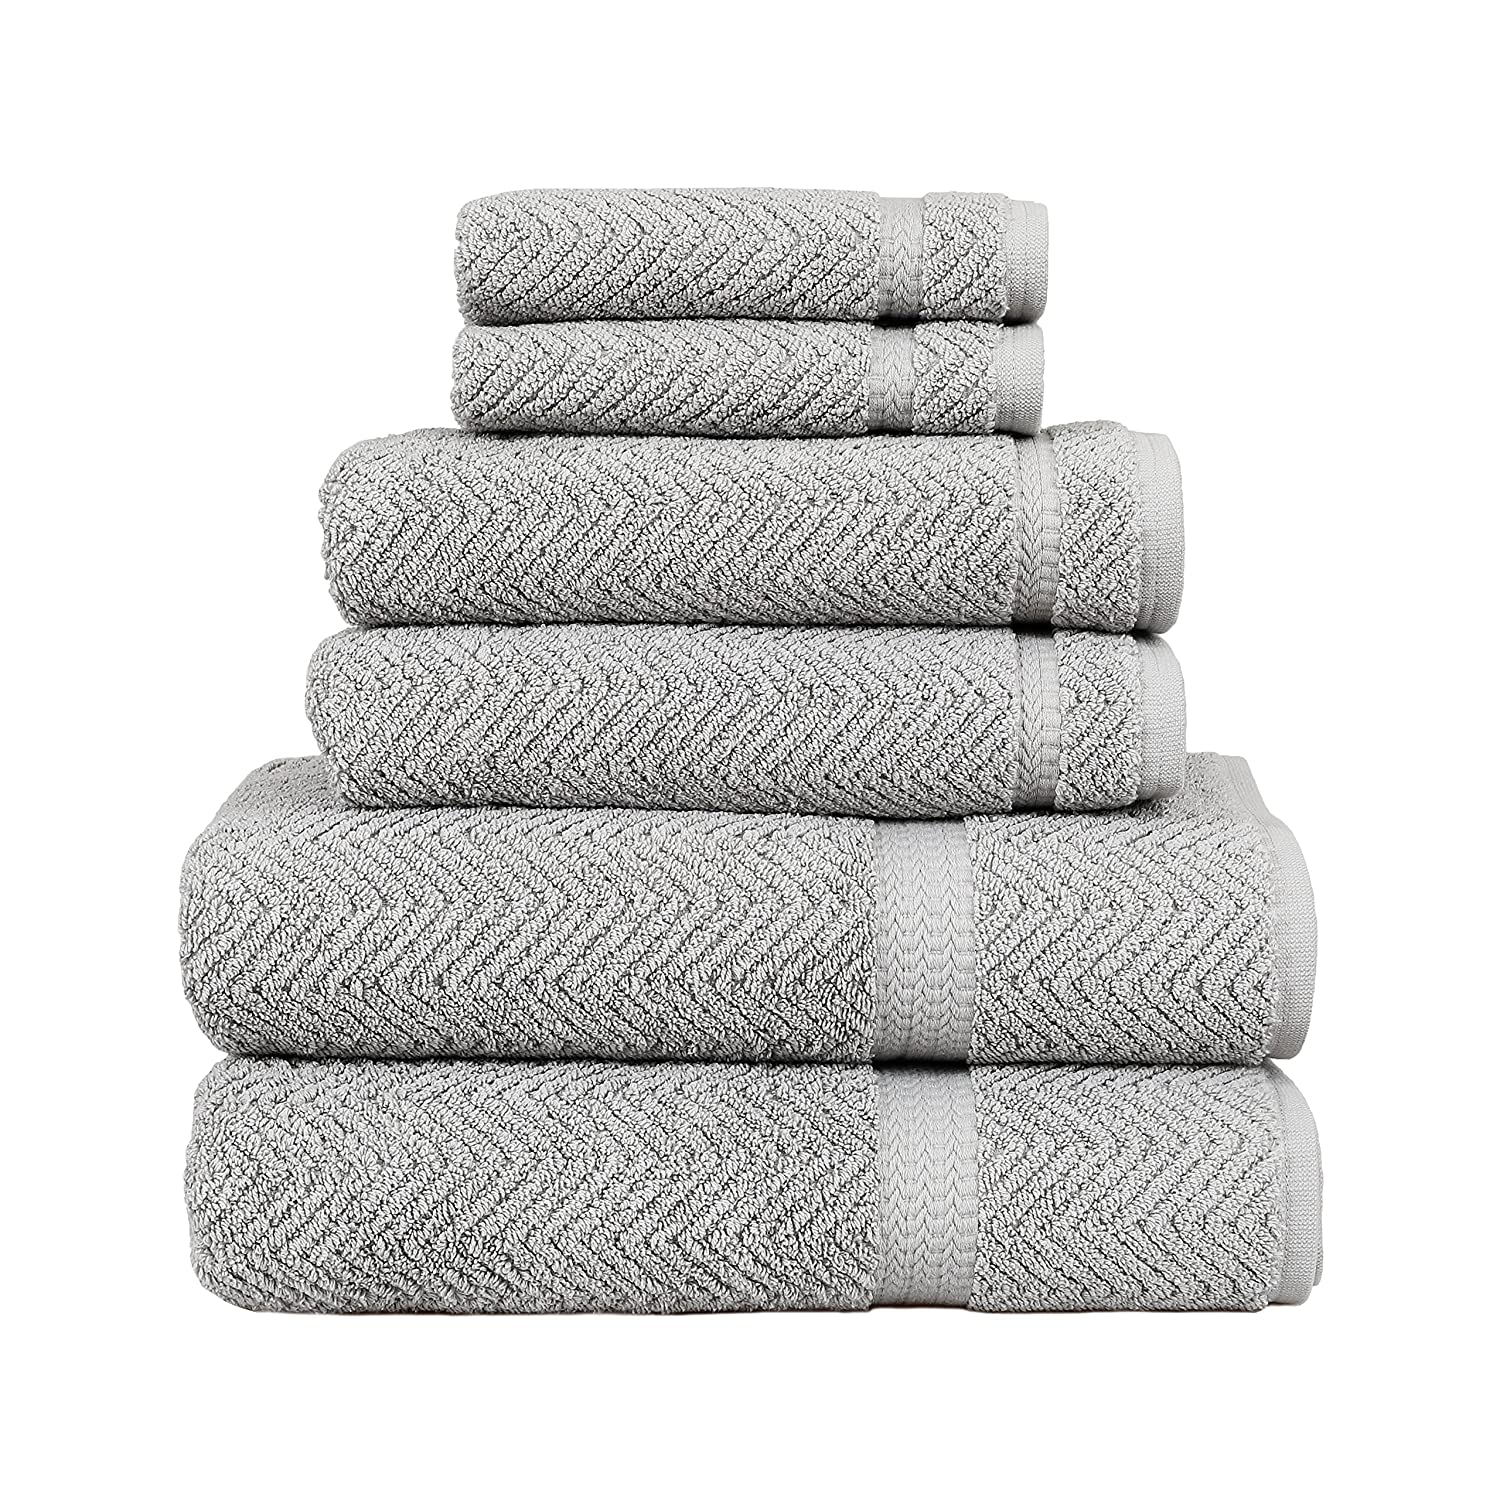 Linum Home Textiles Herringbone 100% Turkish Cotton 6 Piece Towel Set HB93-6C